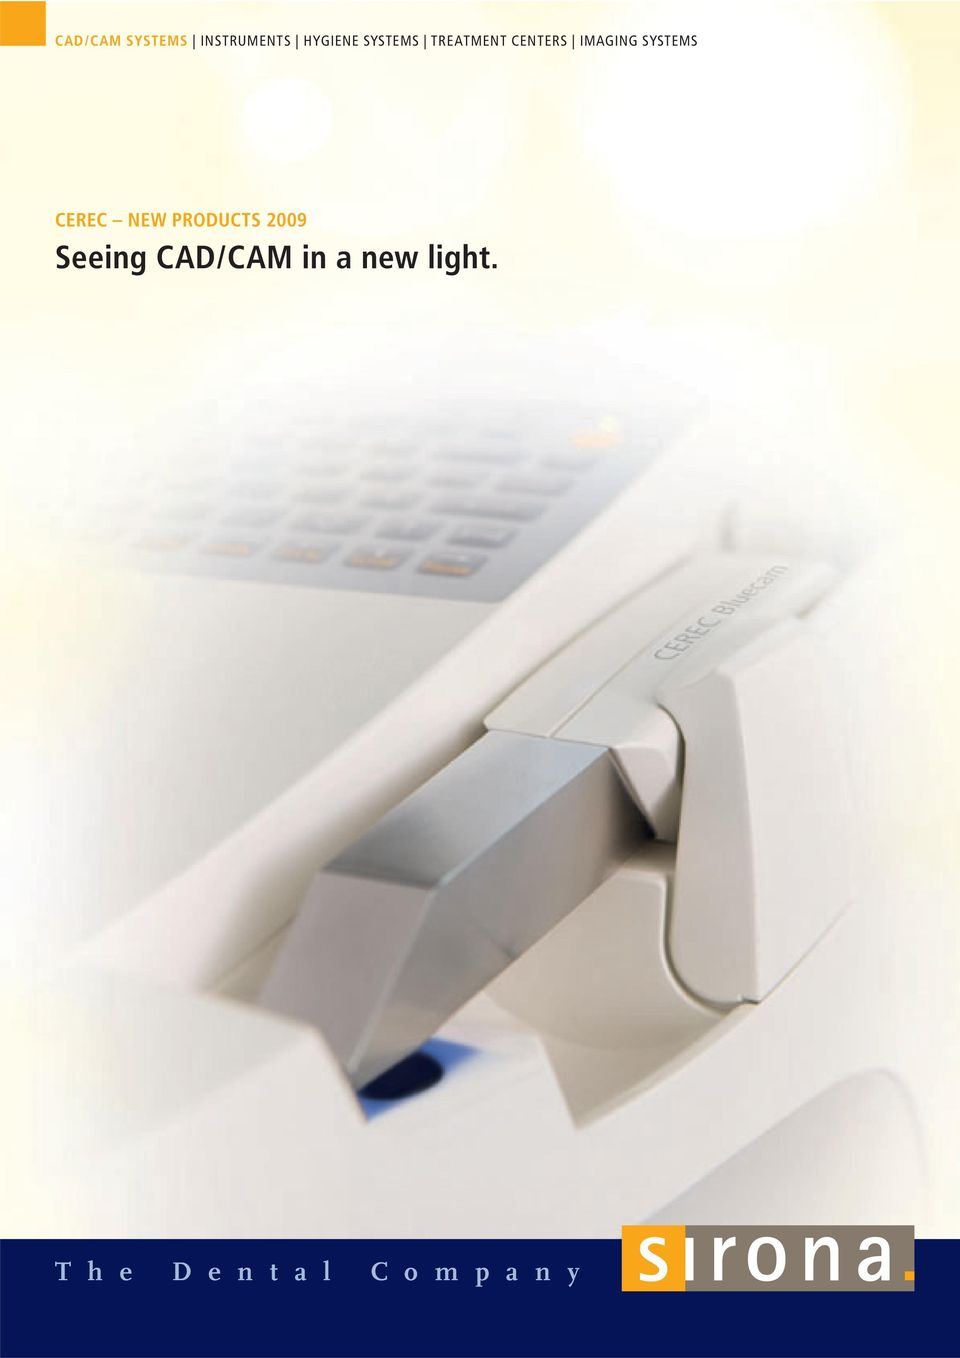 CEREC NEW PRODUCTS 2009 Seeing CAD/CAM in